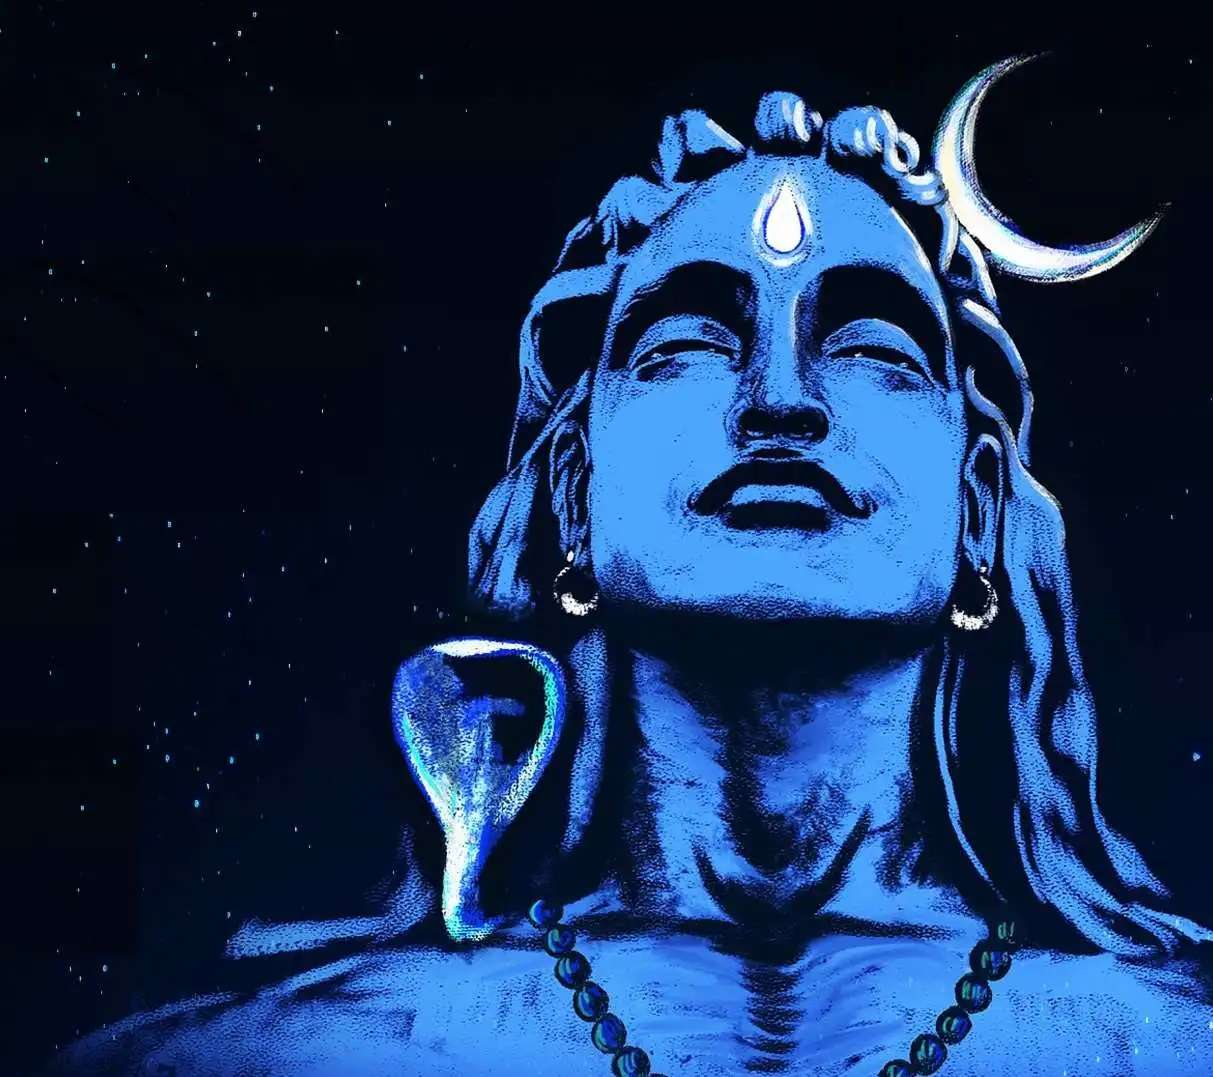 Shiv - The Adiyogi illustration